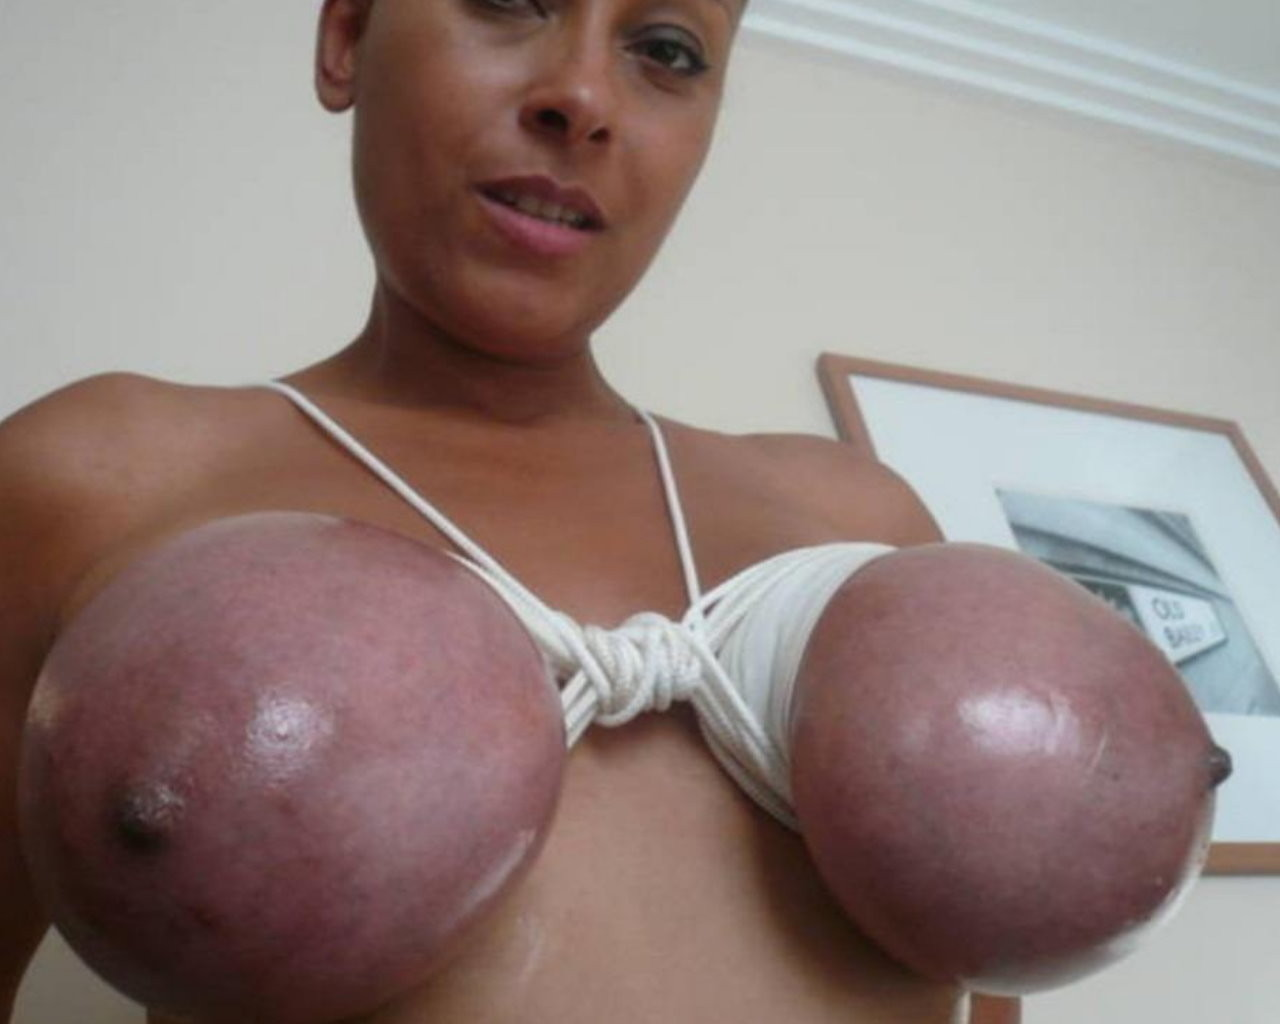 carmen pope nude models paysite